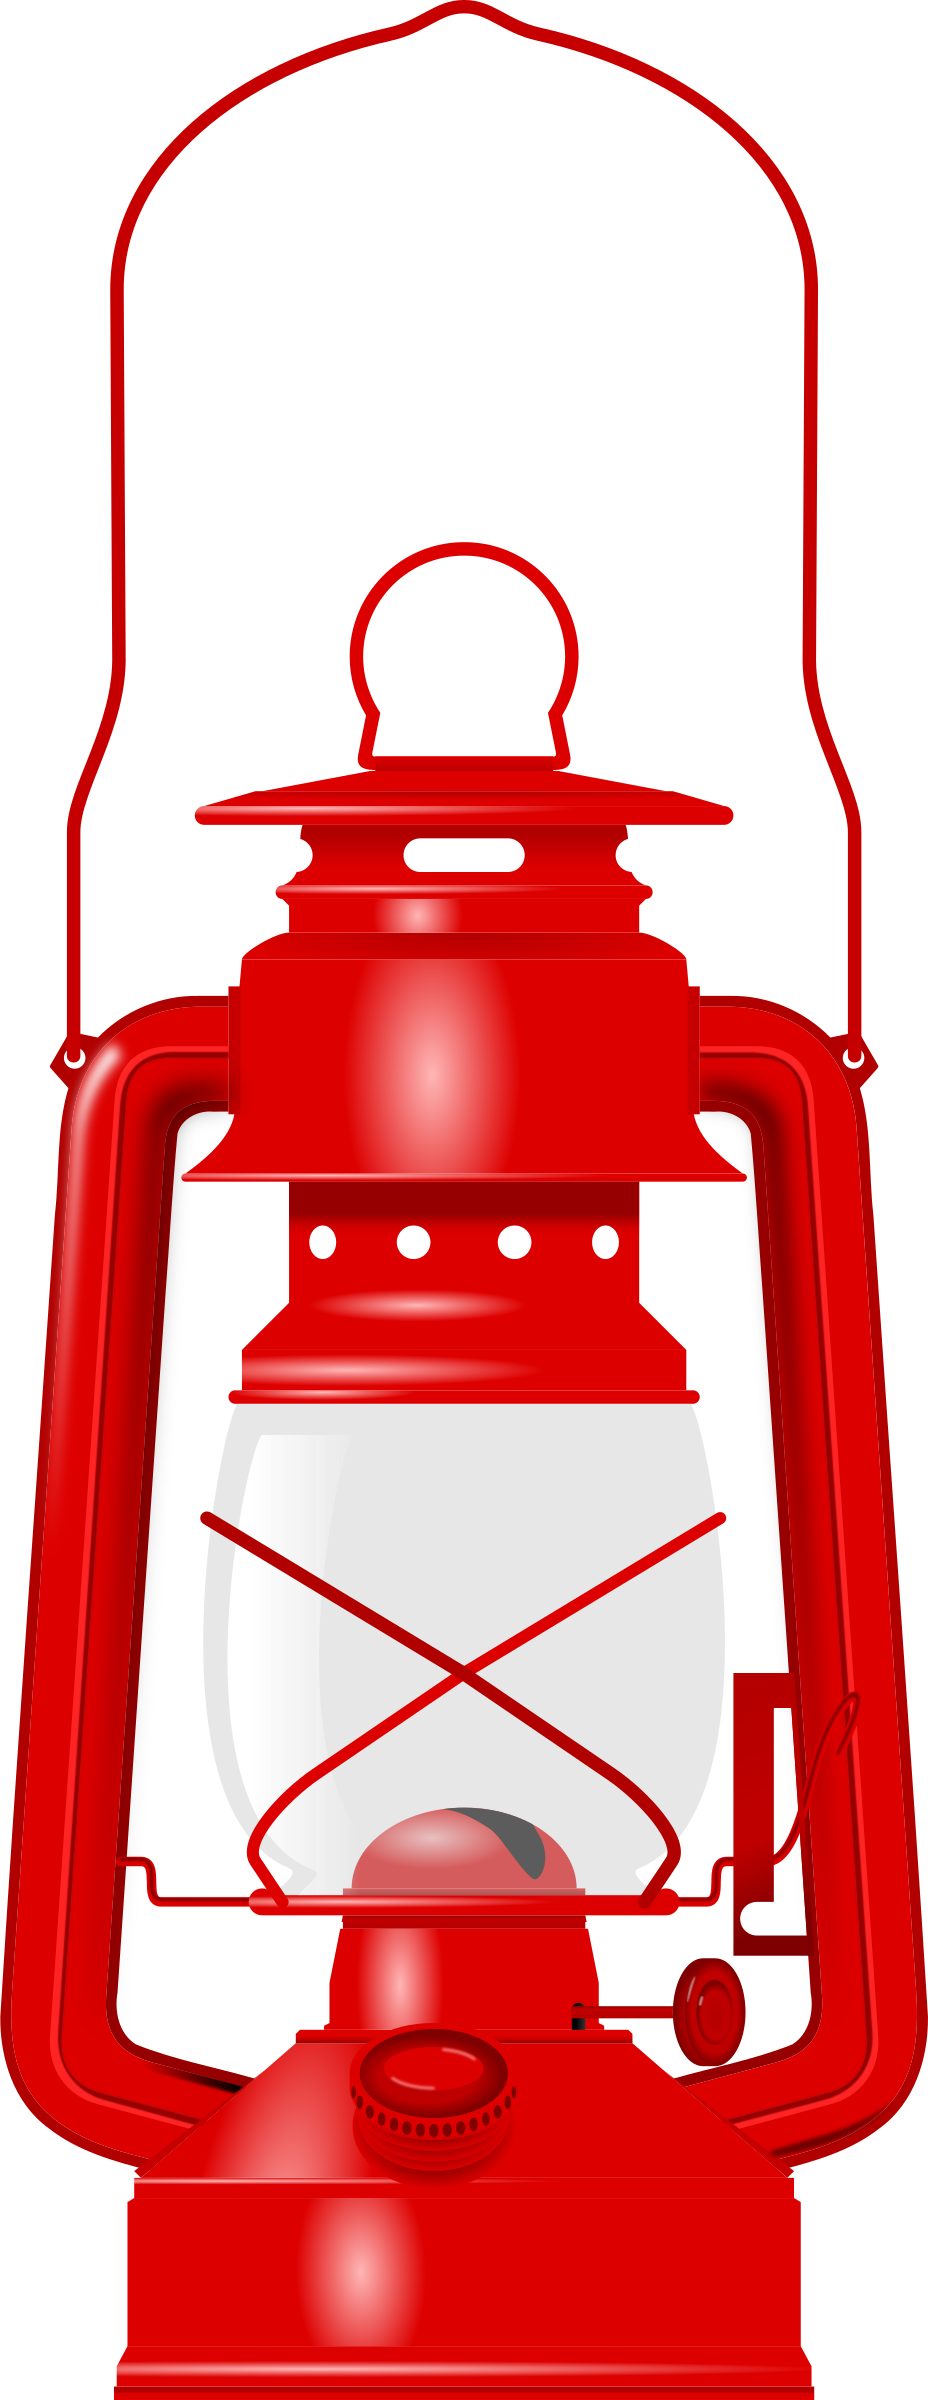 Lamp clipart paraffin lamp. Collection of free ethylidene